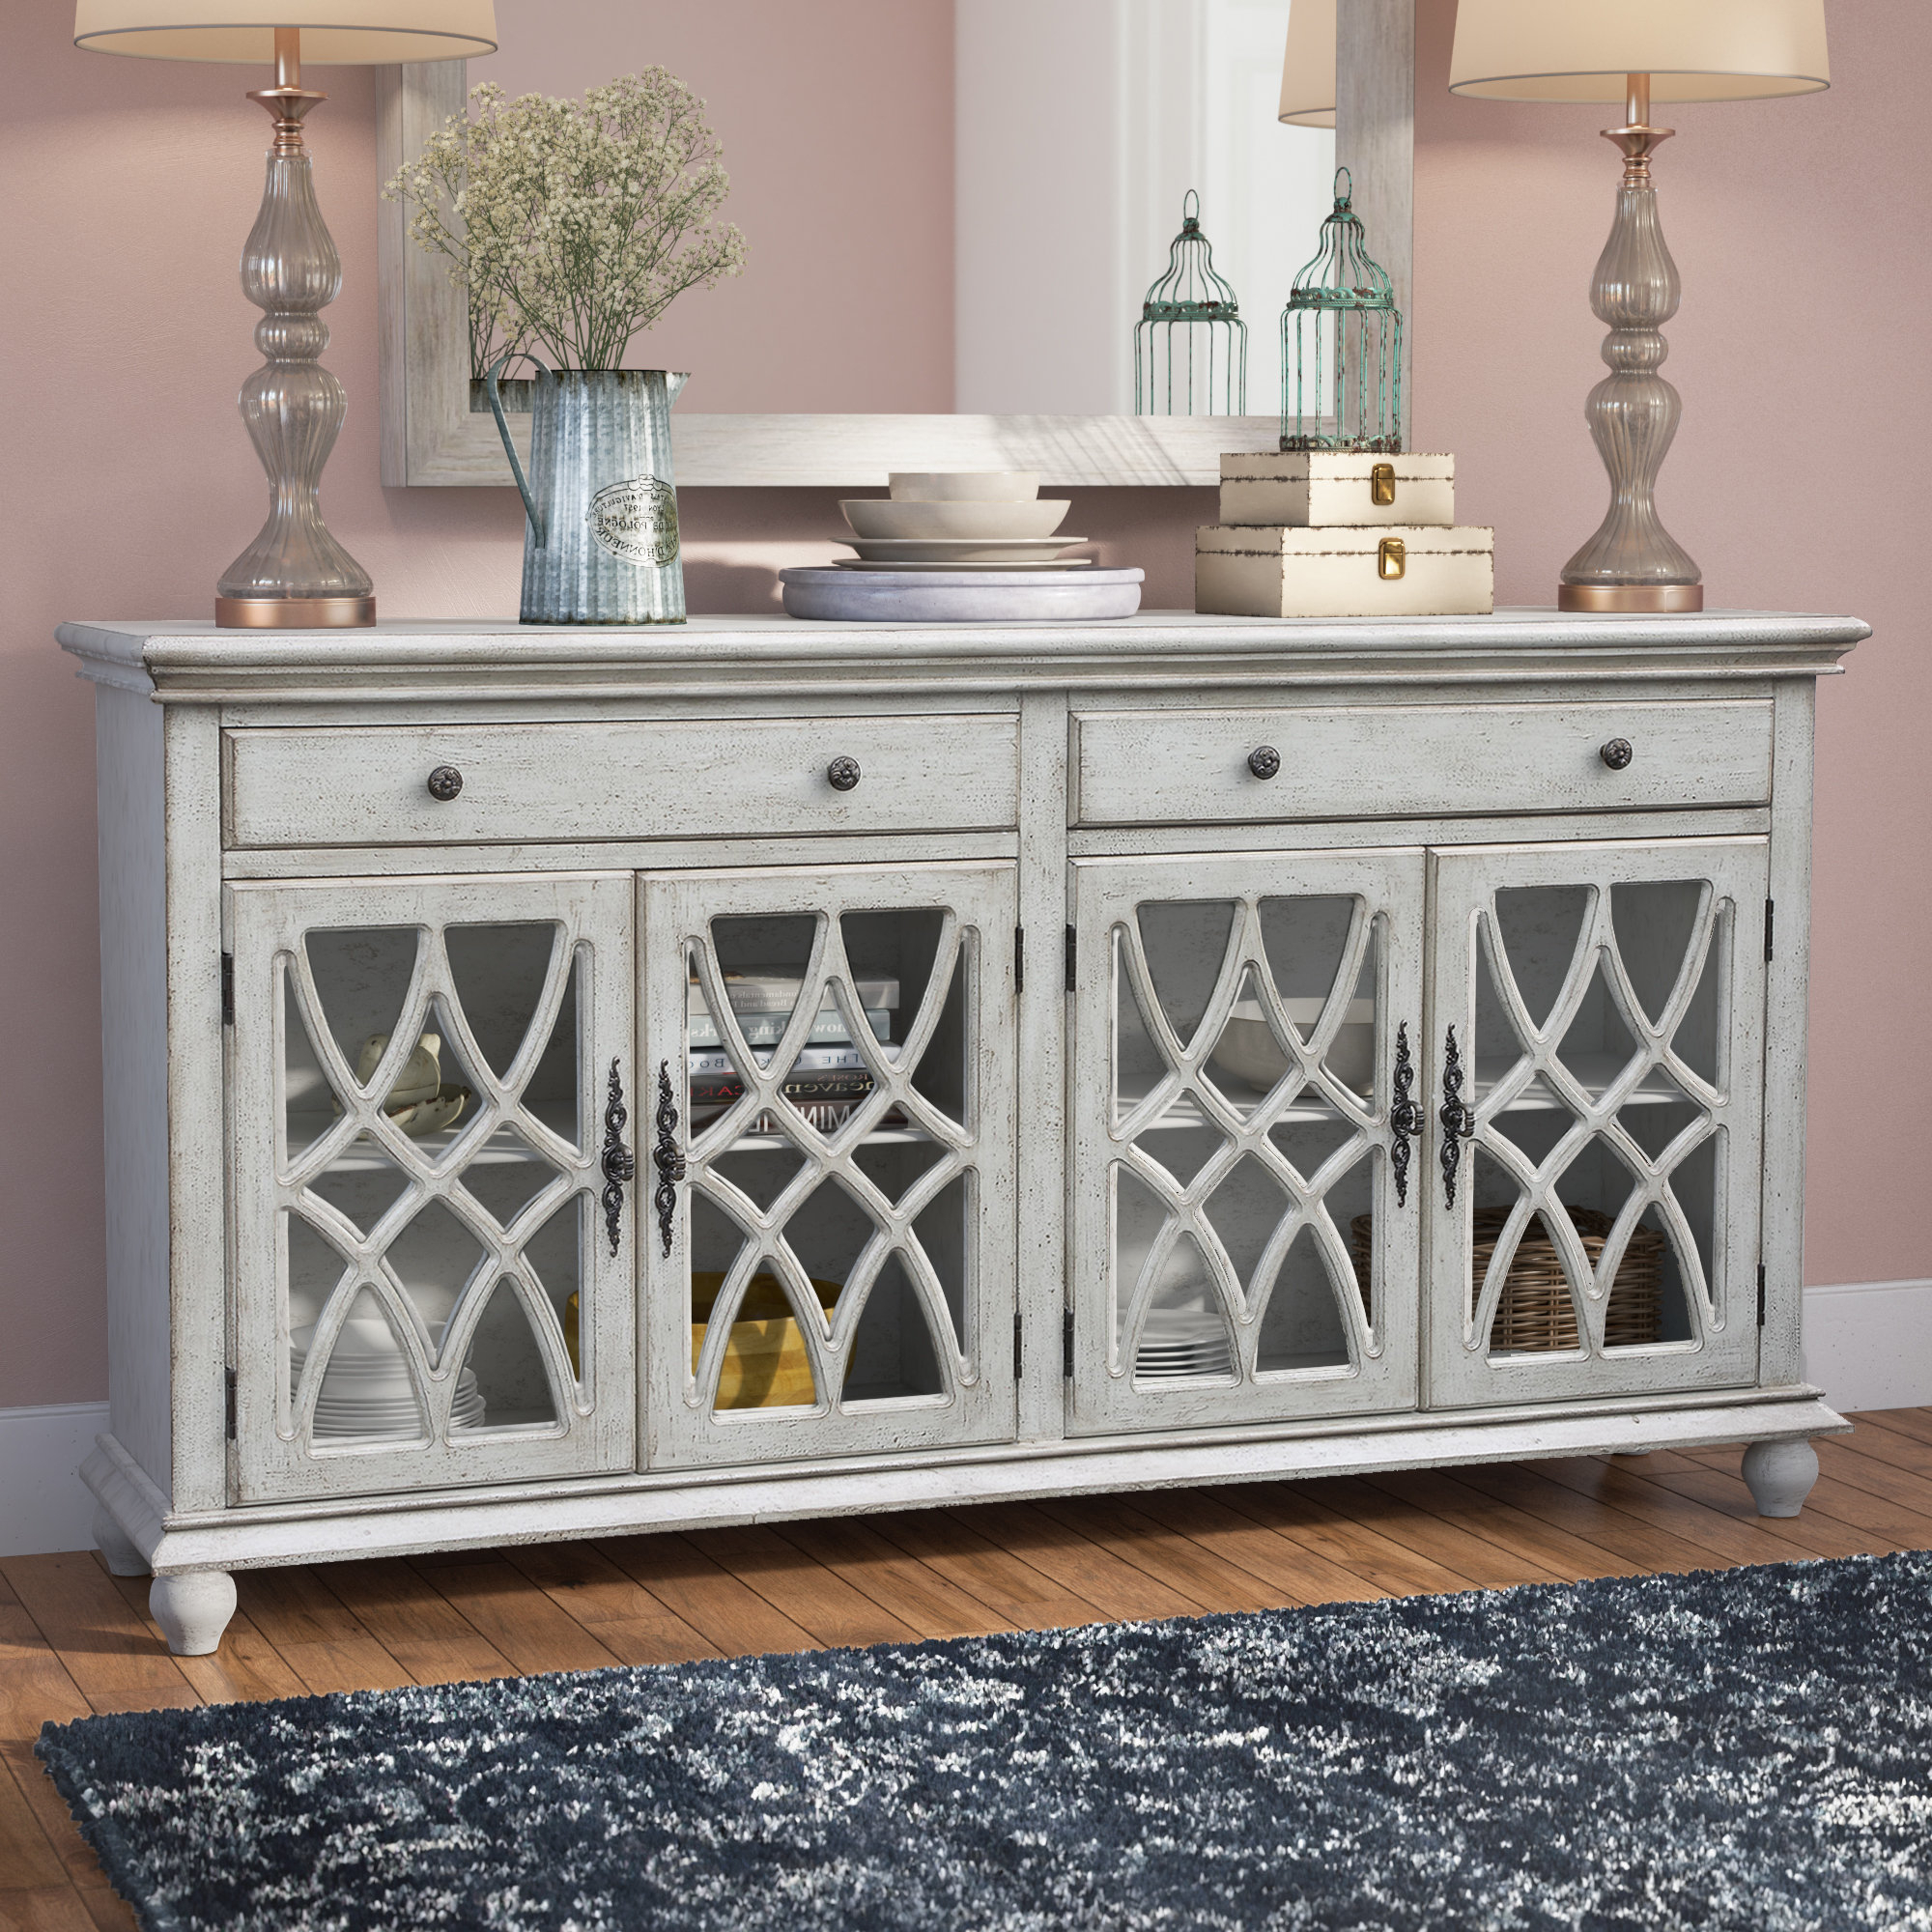 Widely Used Raquette Sideboard Regarding Raquette Sideboards (View 2 of 20)